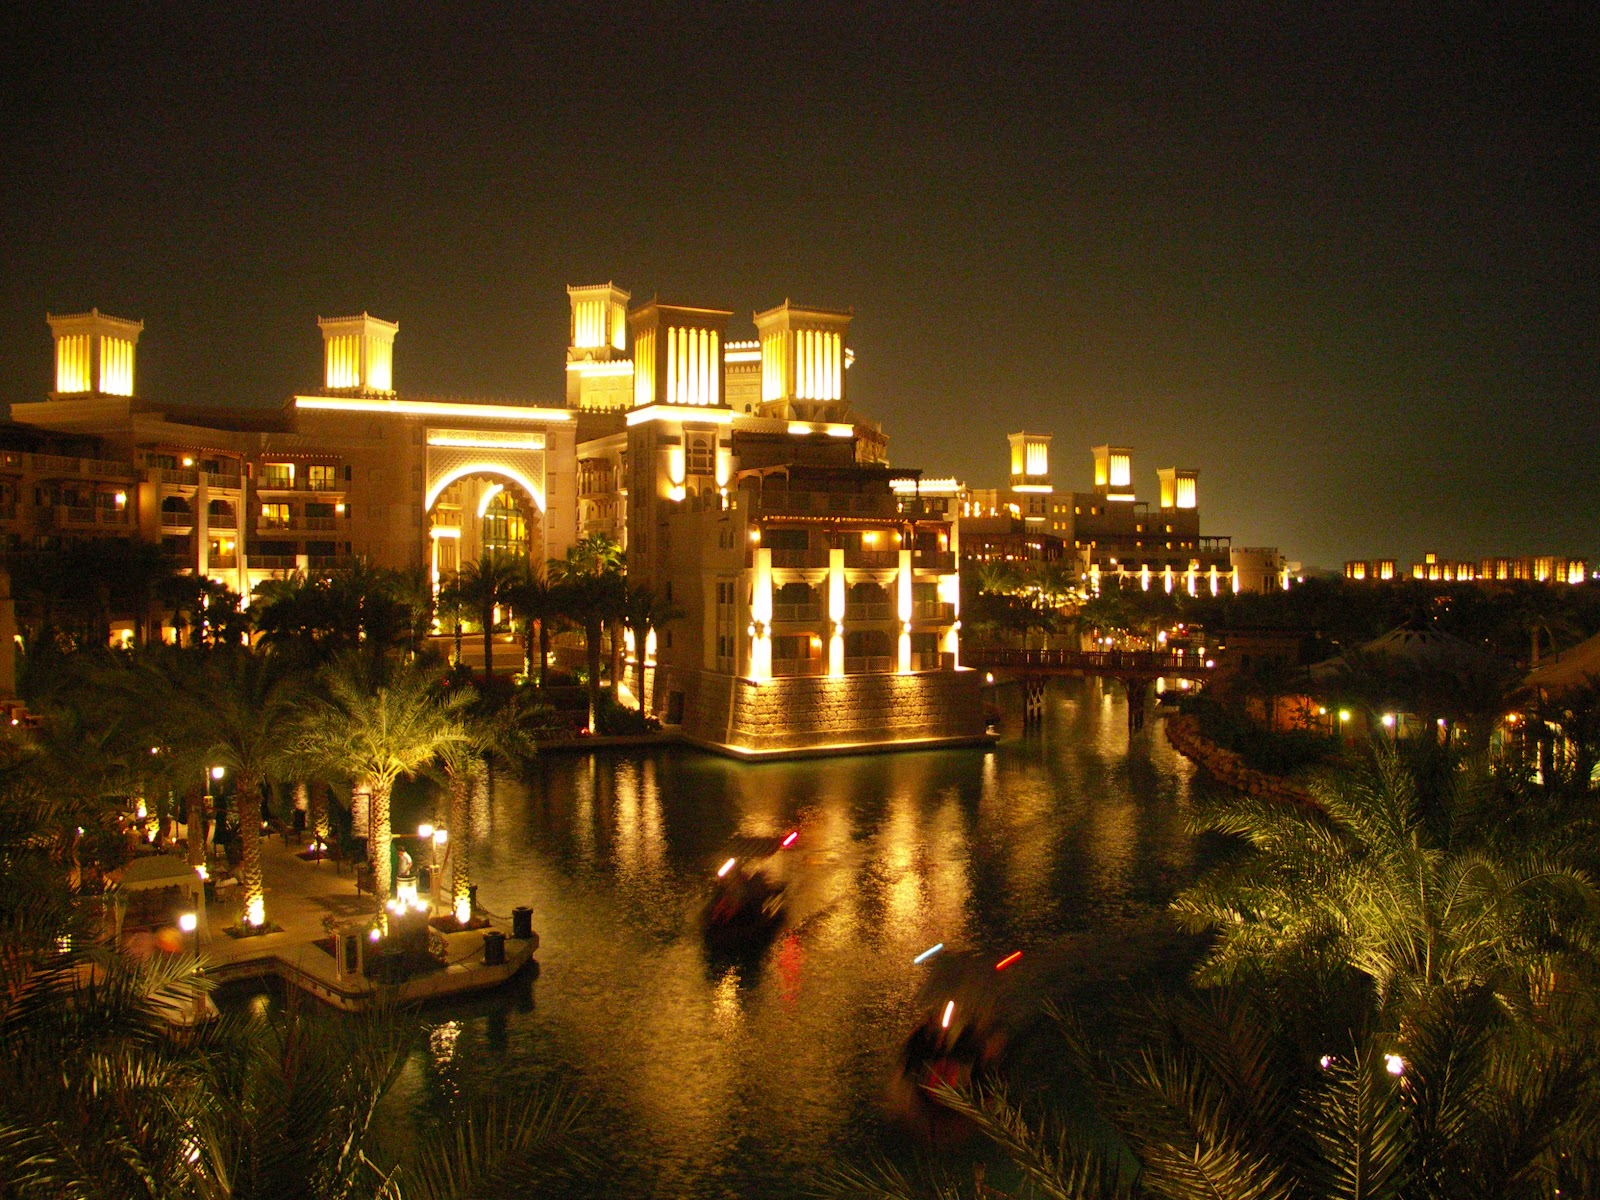 The famous hotels in dubai al qasr hotel madinat jumeirah for Dubai famous hotel